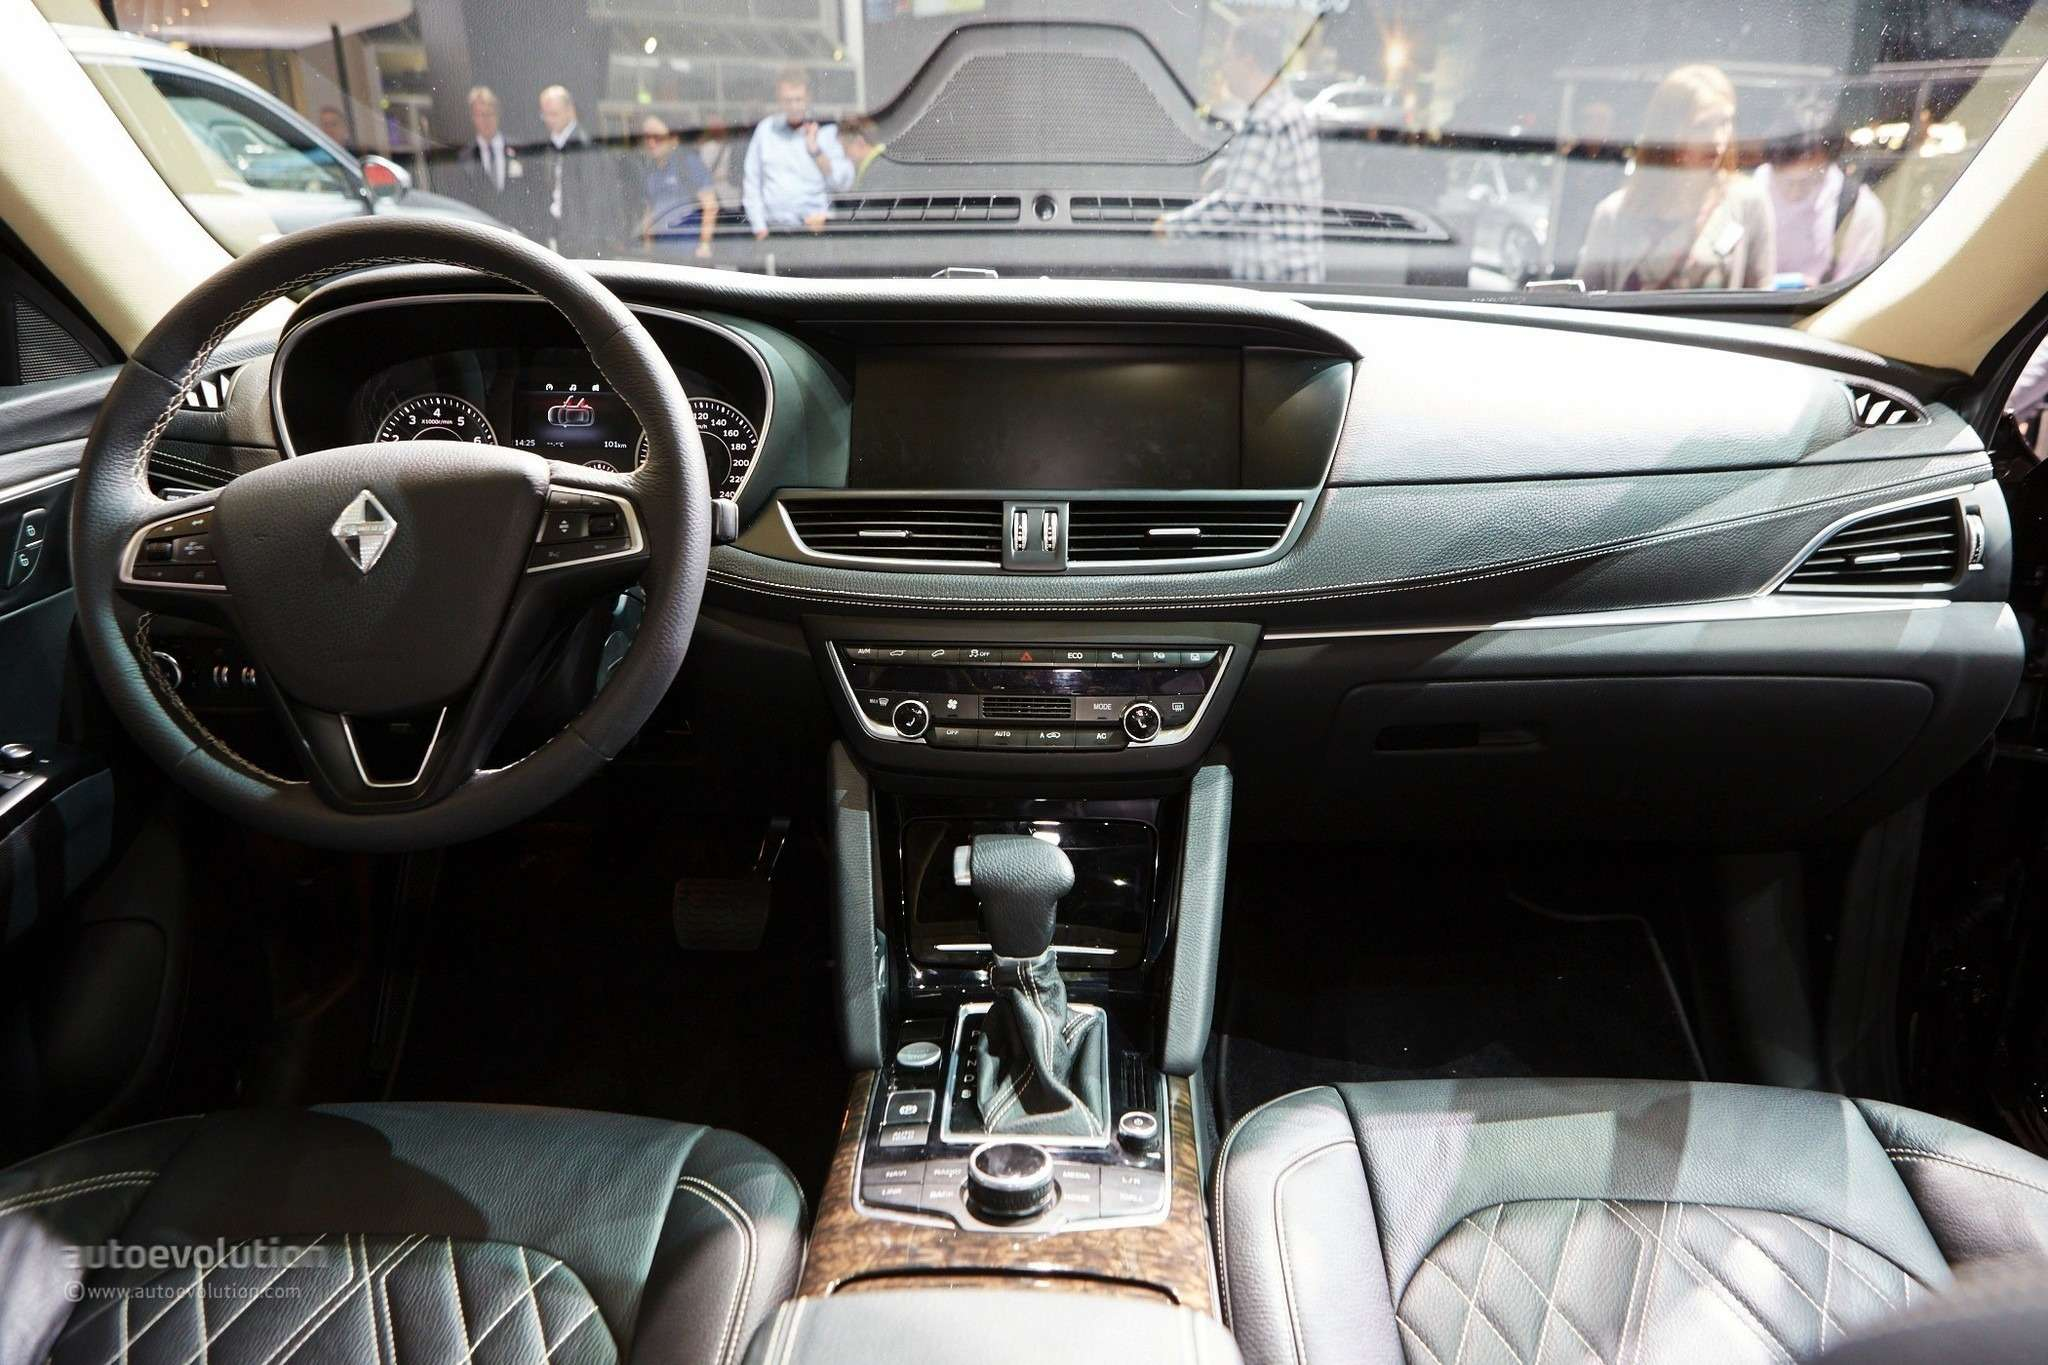 borgward-is-officially-back-with-its-bx7-suv-in-frankfurt-live-photos_7